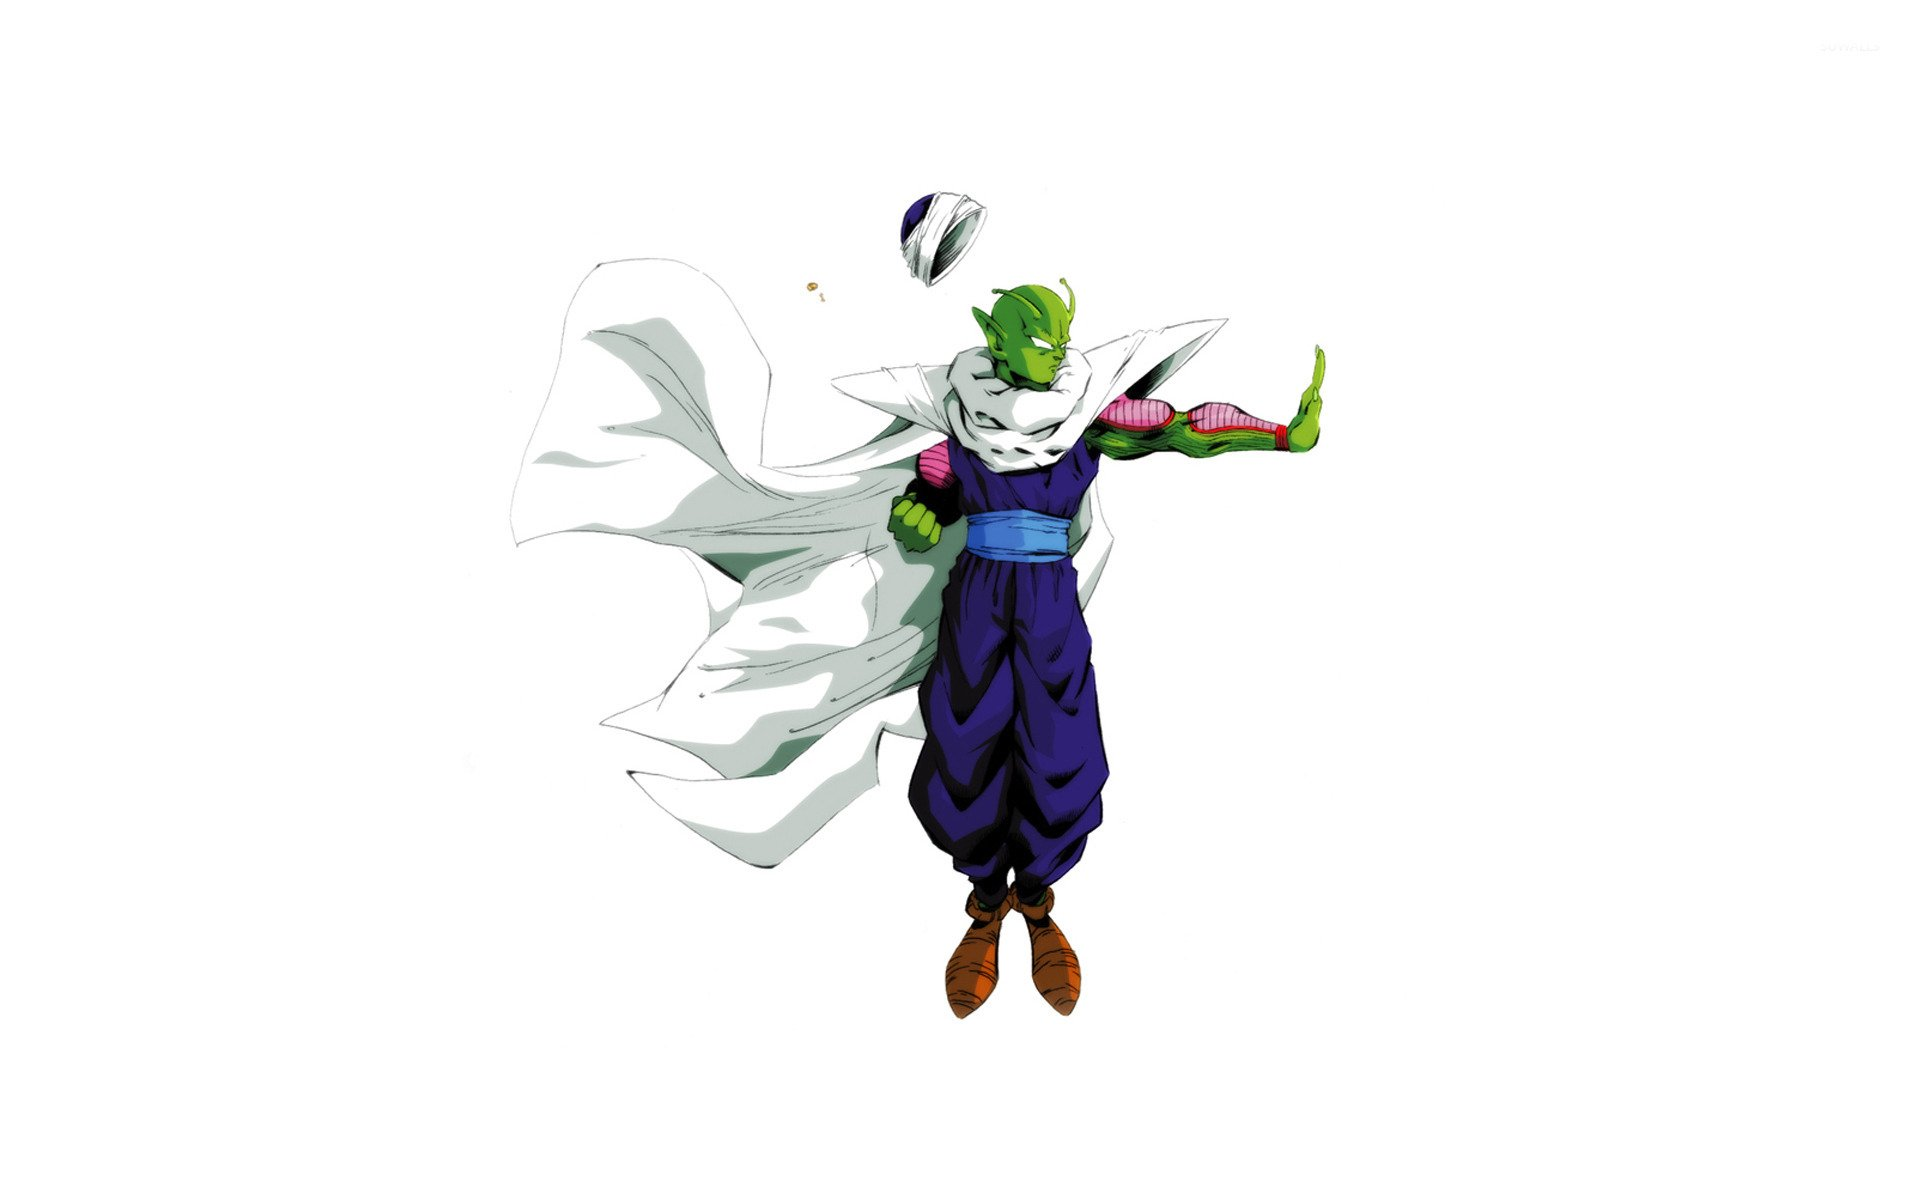 Dragon Ball Z Piccolo Wallpaper Wallpapersafari